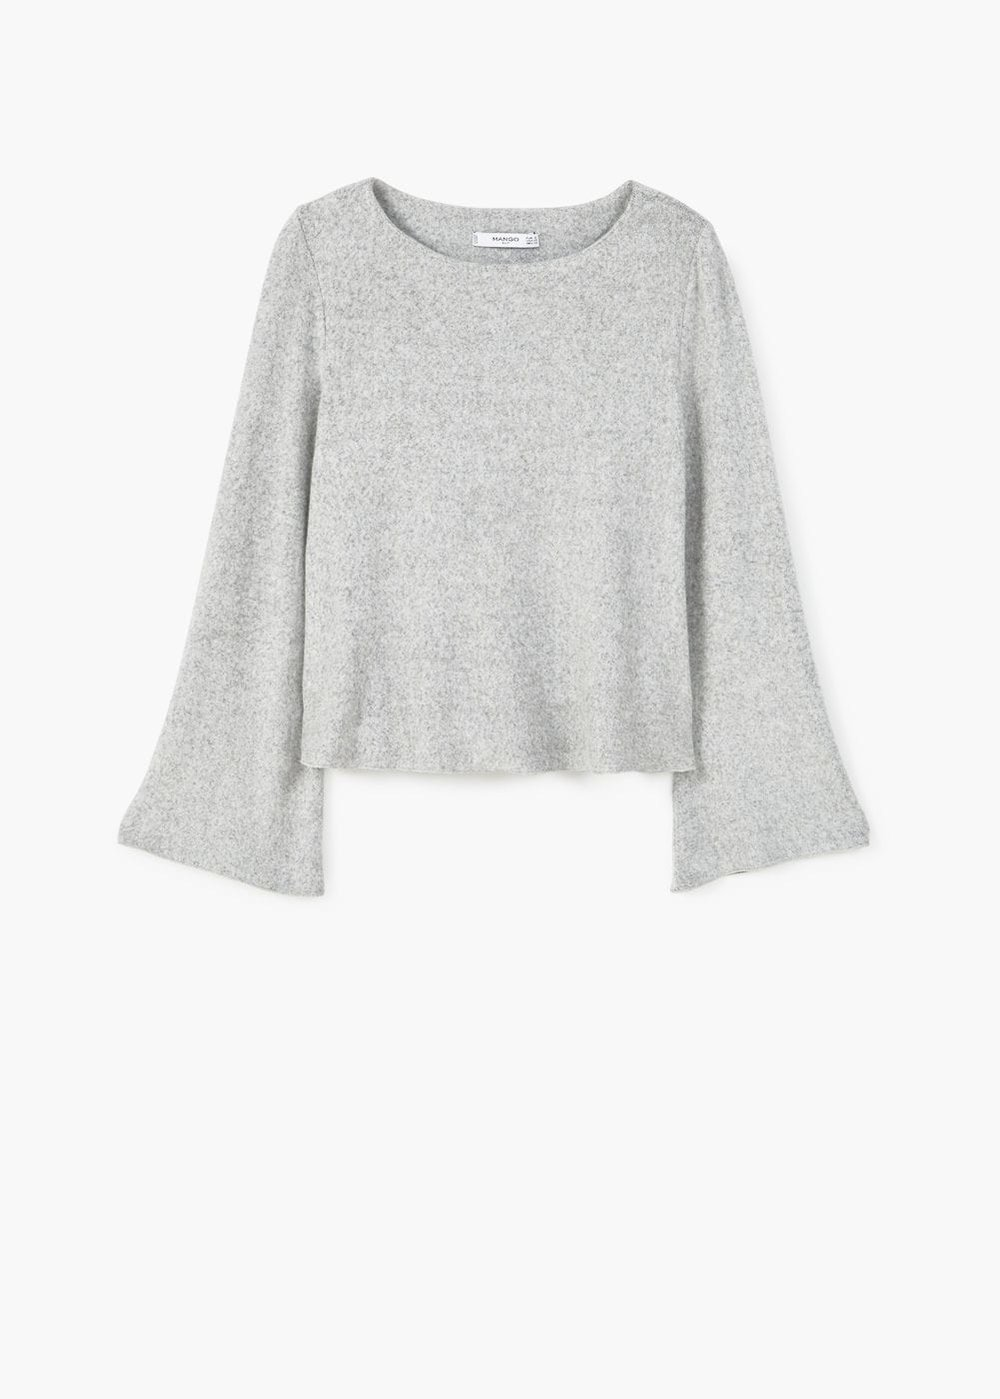 Mango Flared Sweater $39.99